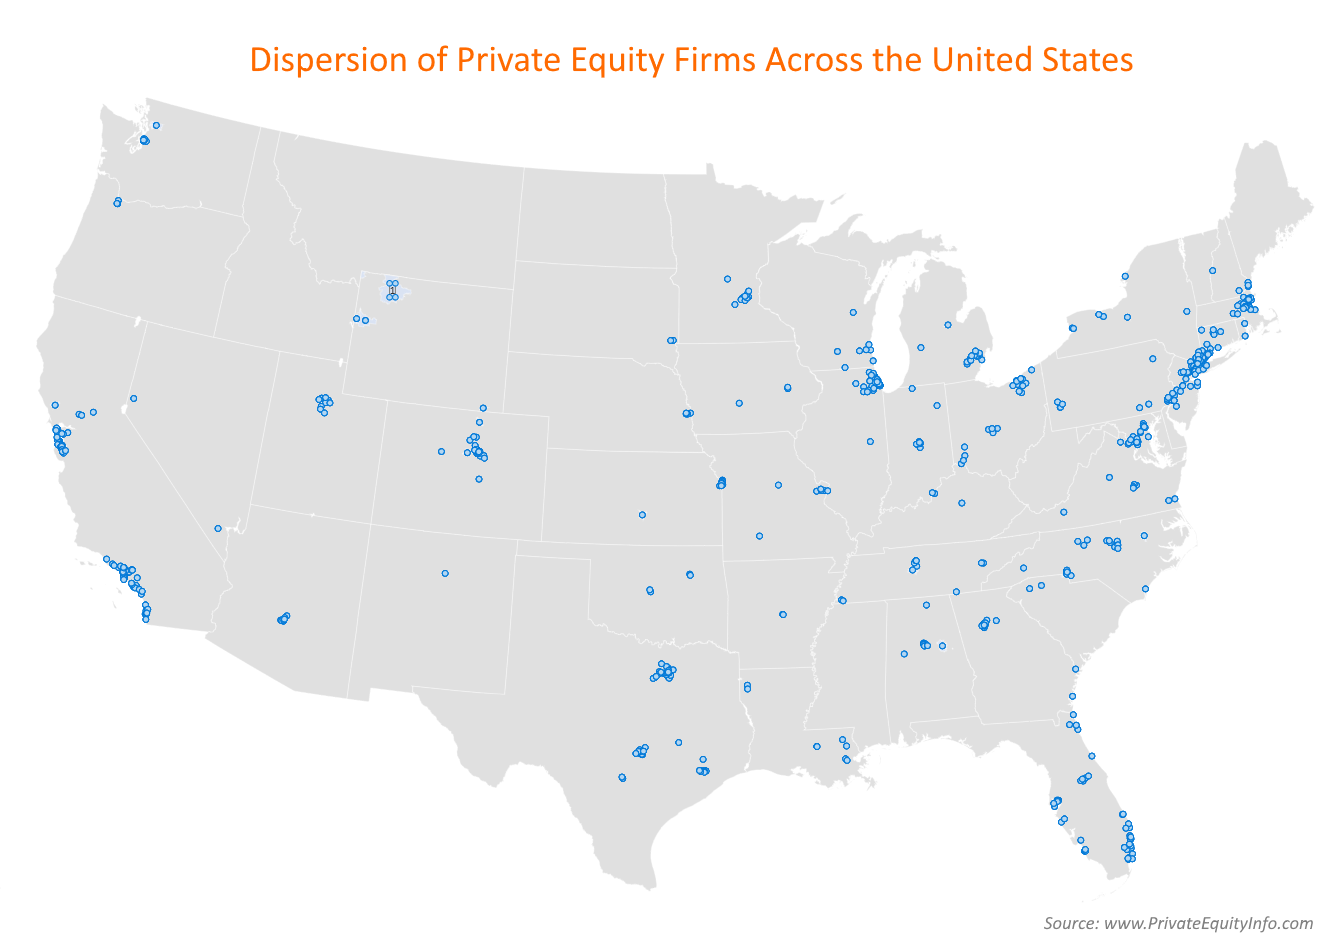 Private Equity Firms - U.S. Locations